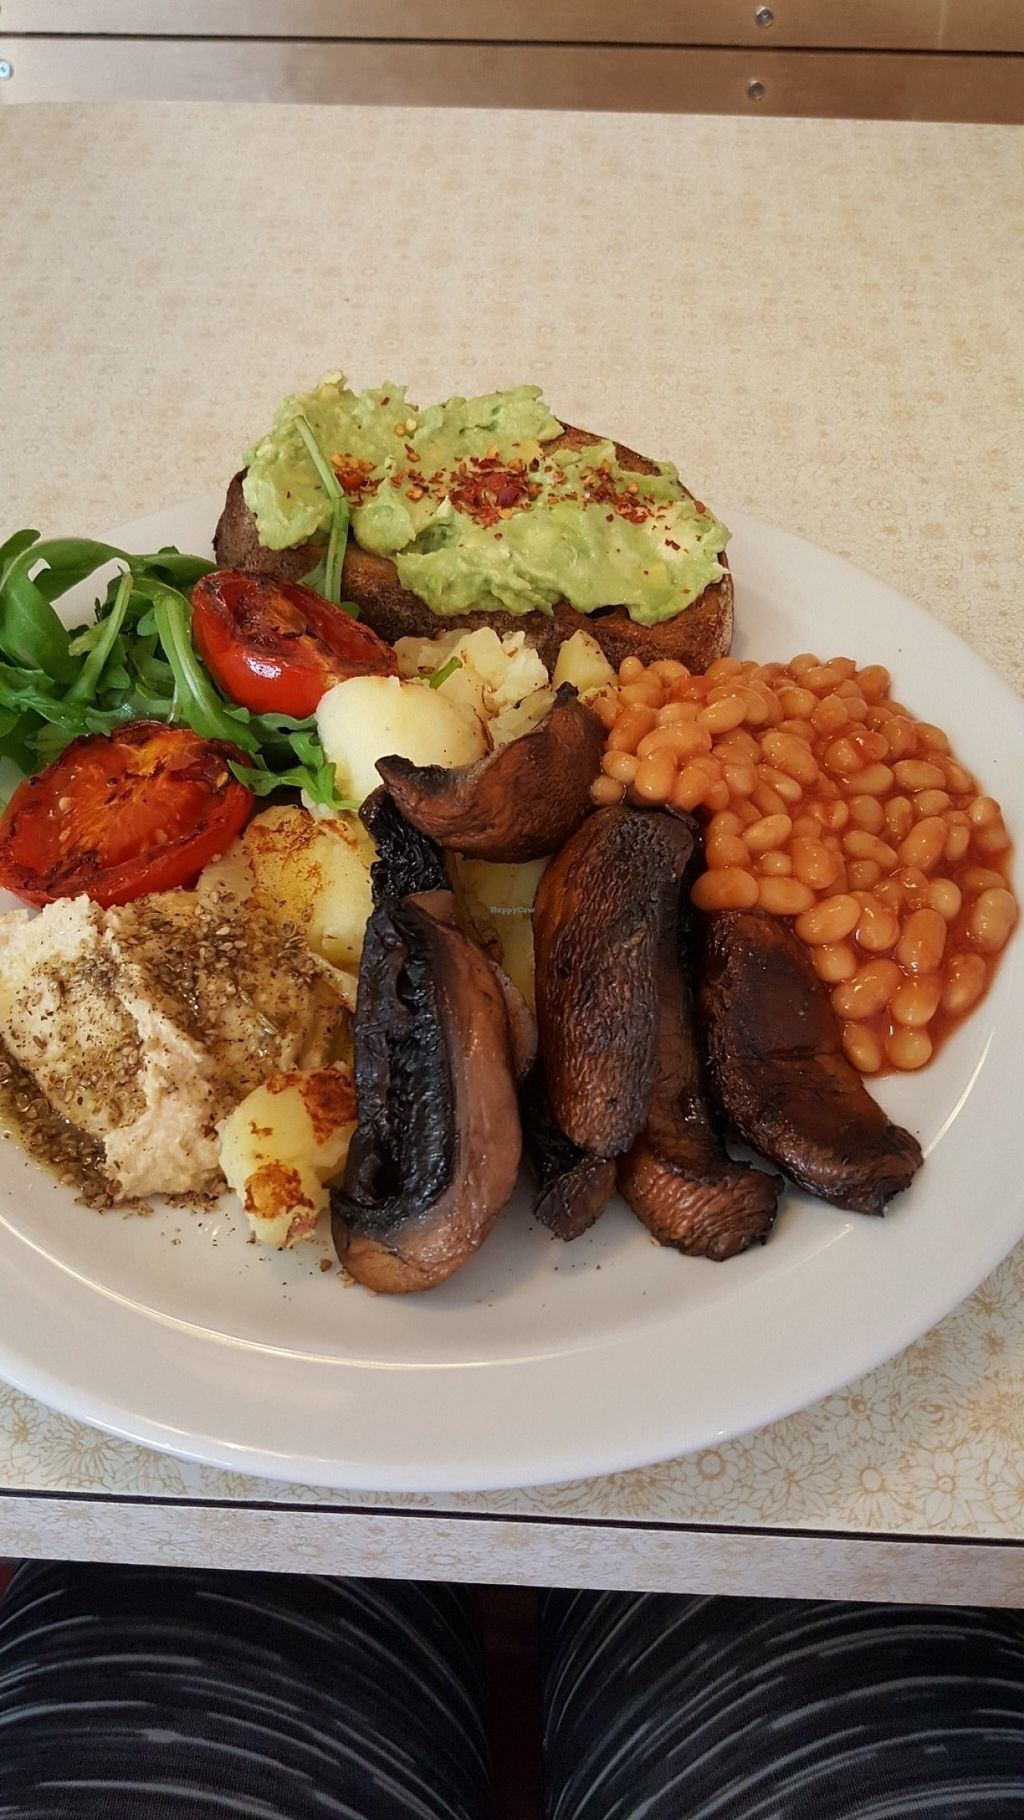 """Photo of Cafe Boscanova  by <a href=""""/members/profile/Clare"""">Clare</a> <br/>Vegan breakfast <br/> July 18, 2016  - <a href='/contact/abuse/image/76521/160778'>Report</a>"""